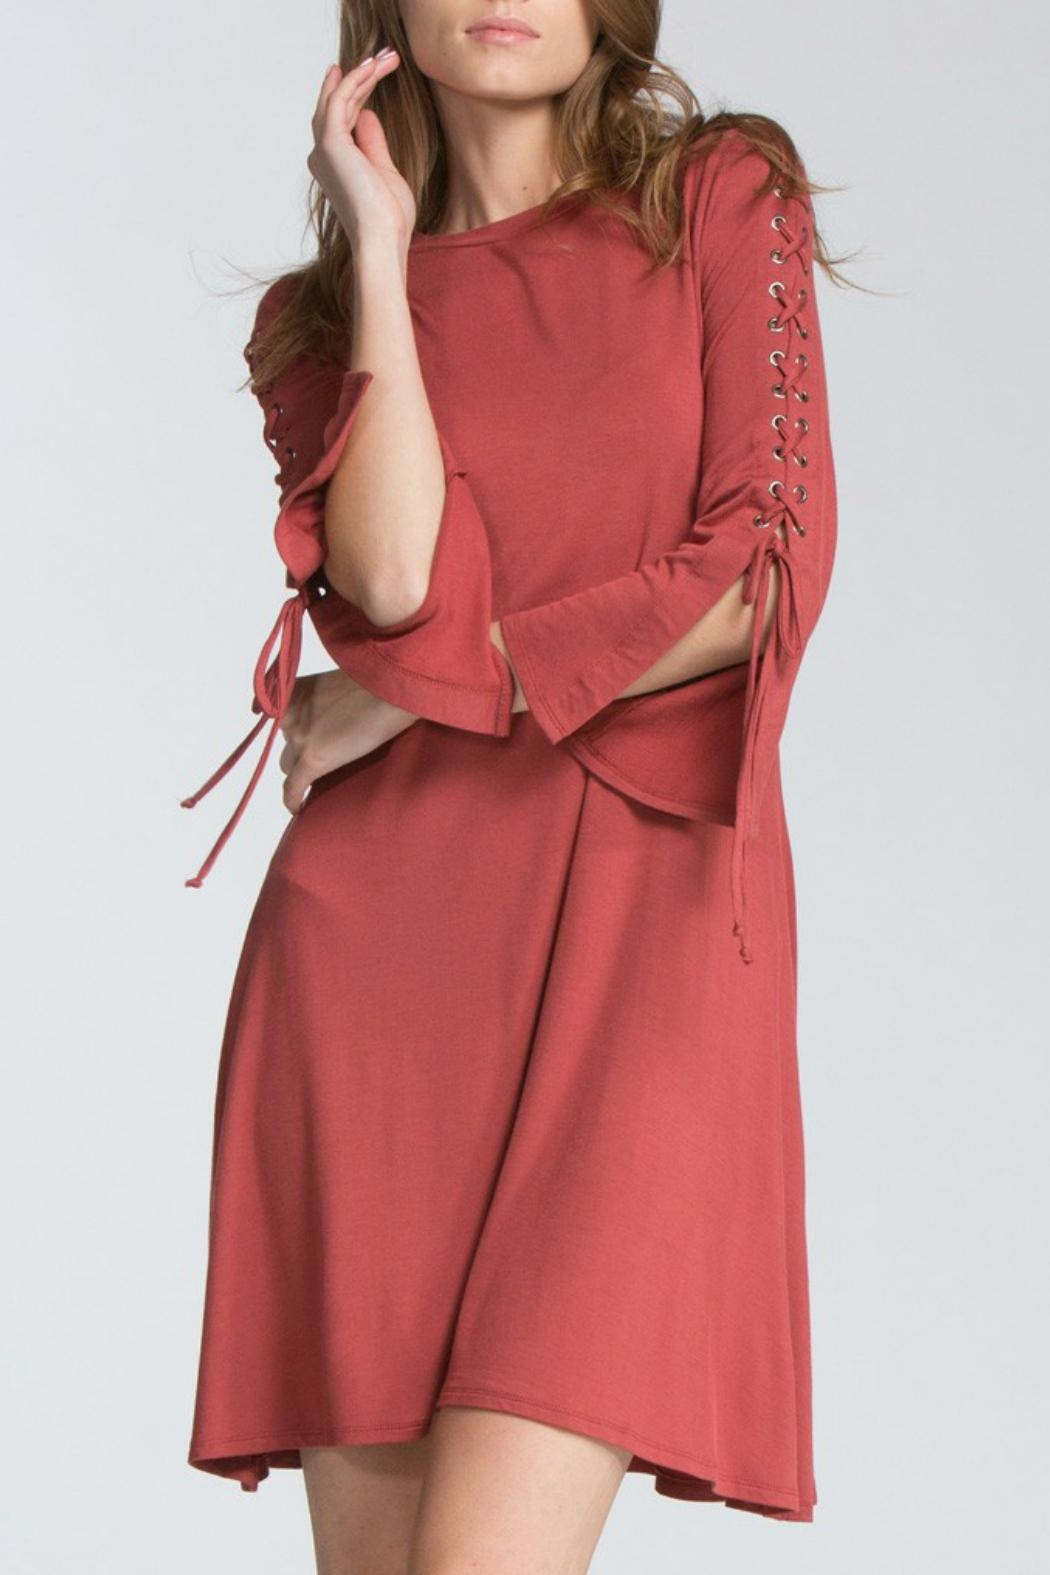 Cherish Rust Lace-Sleeve Dress - Main Image